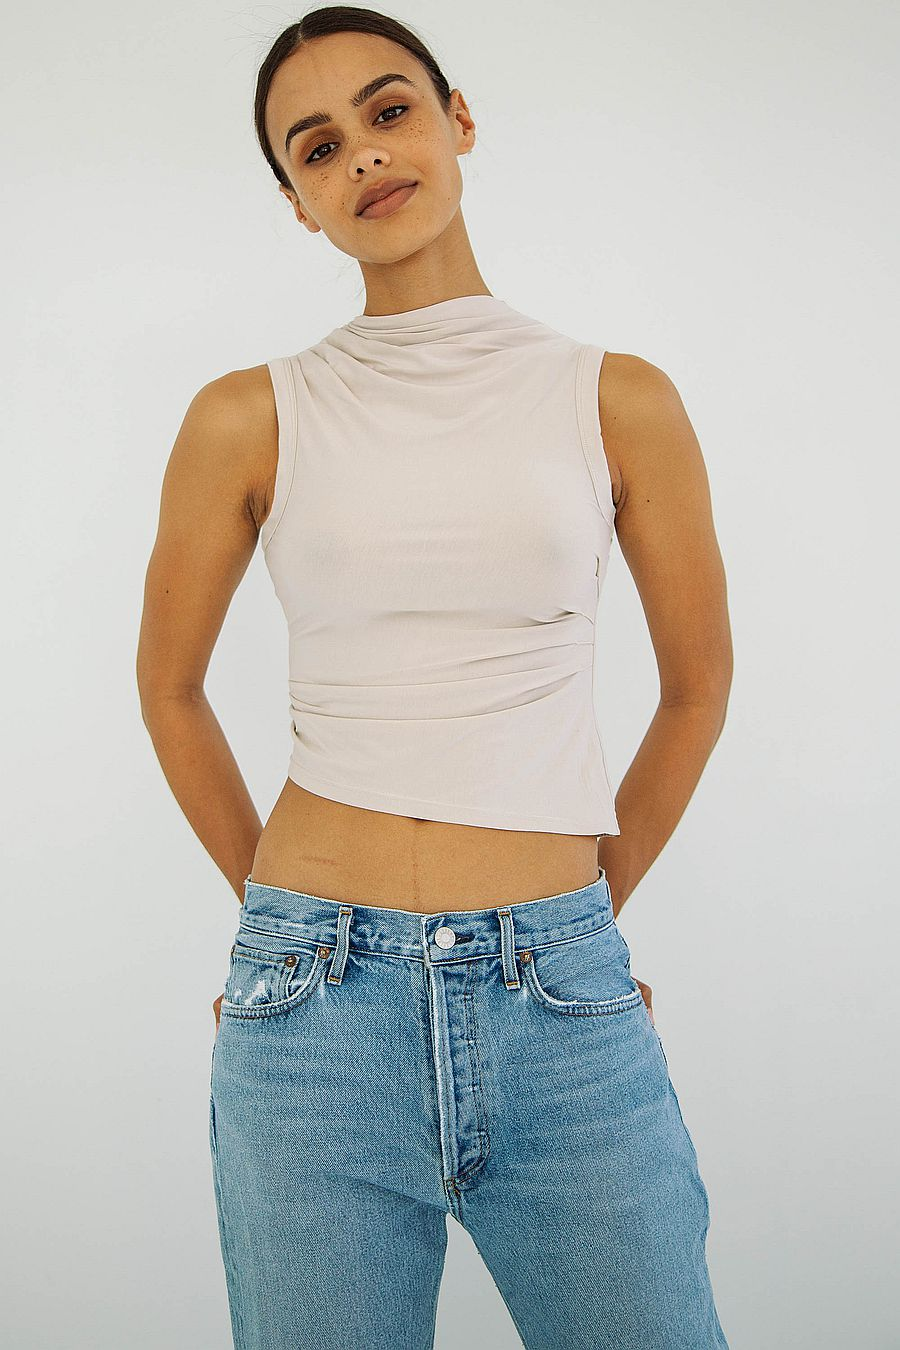 The Line by K Selma Tank Top - Clay